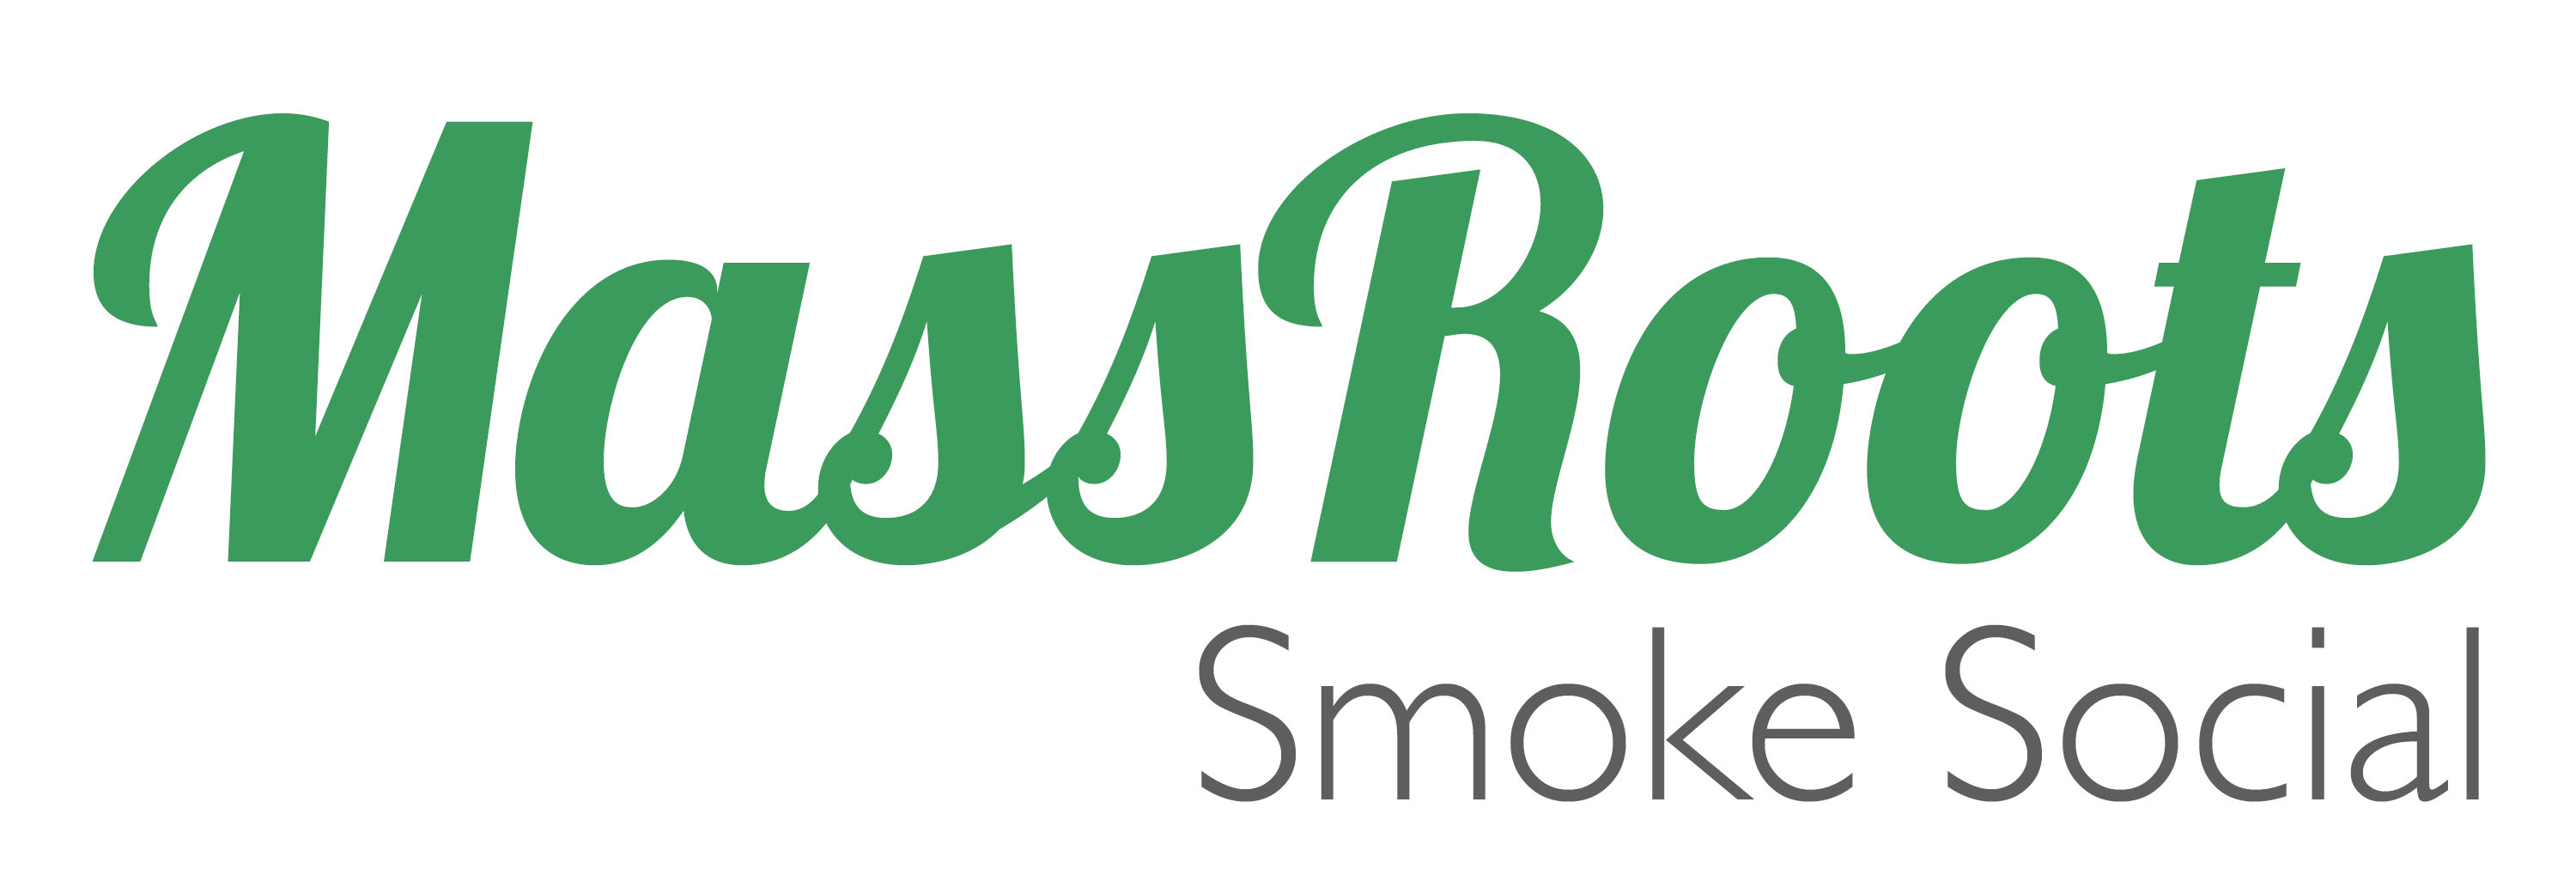 MassRoots to Release Q3 Earnings Report and Host Shareholder Conference Call on November 16, 2015